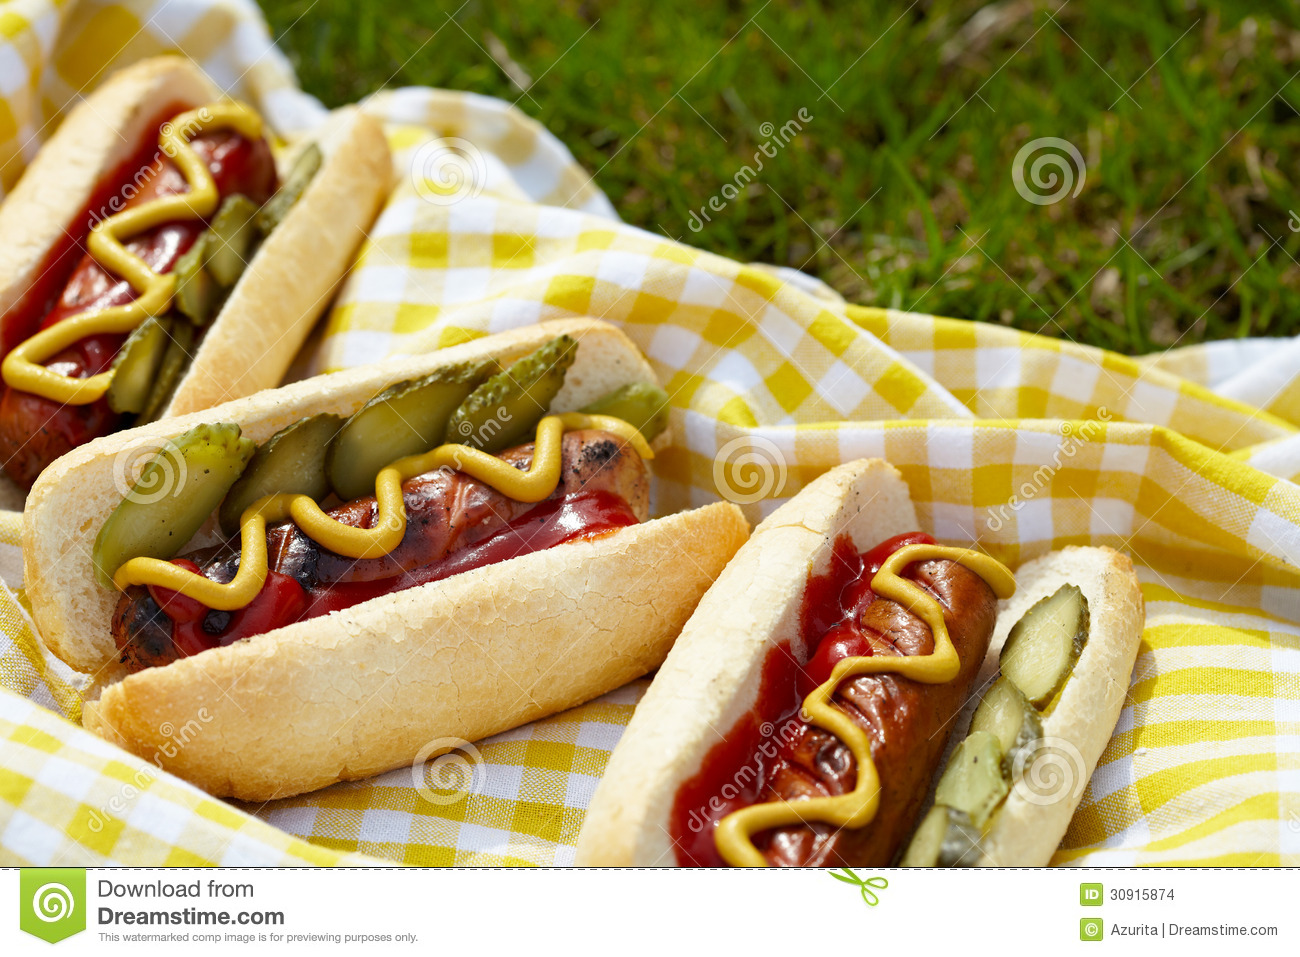 Hot Dogs With Mustard Relish And Ketchup